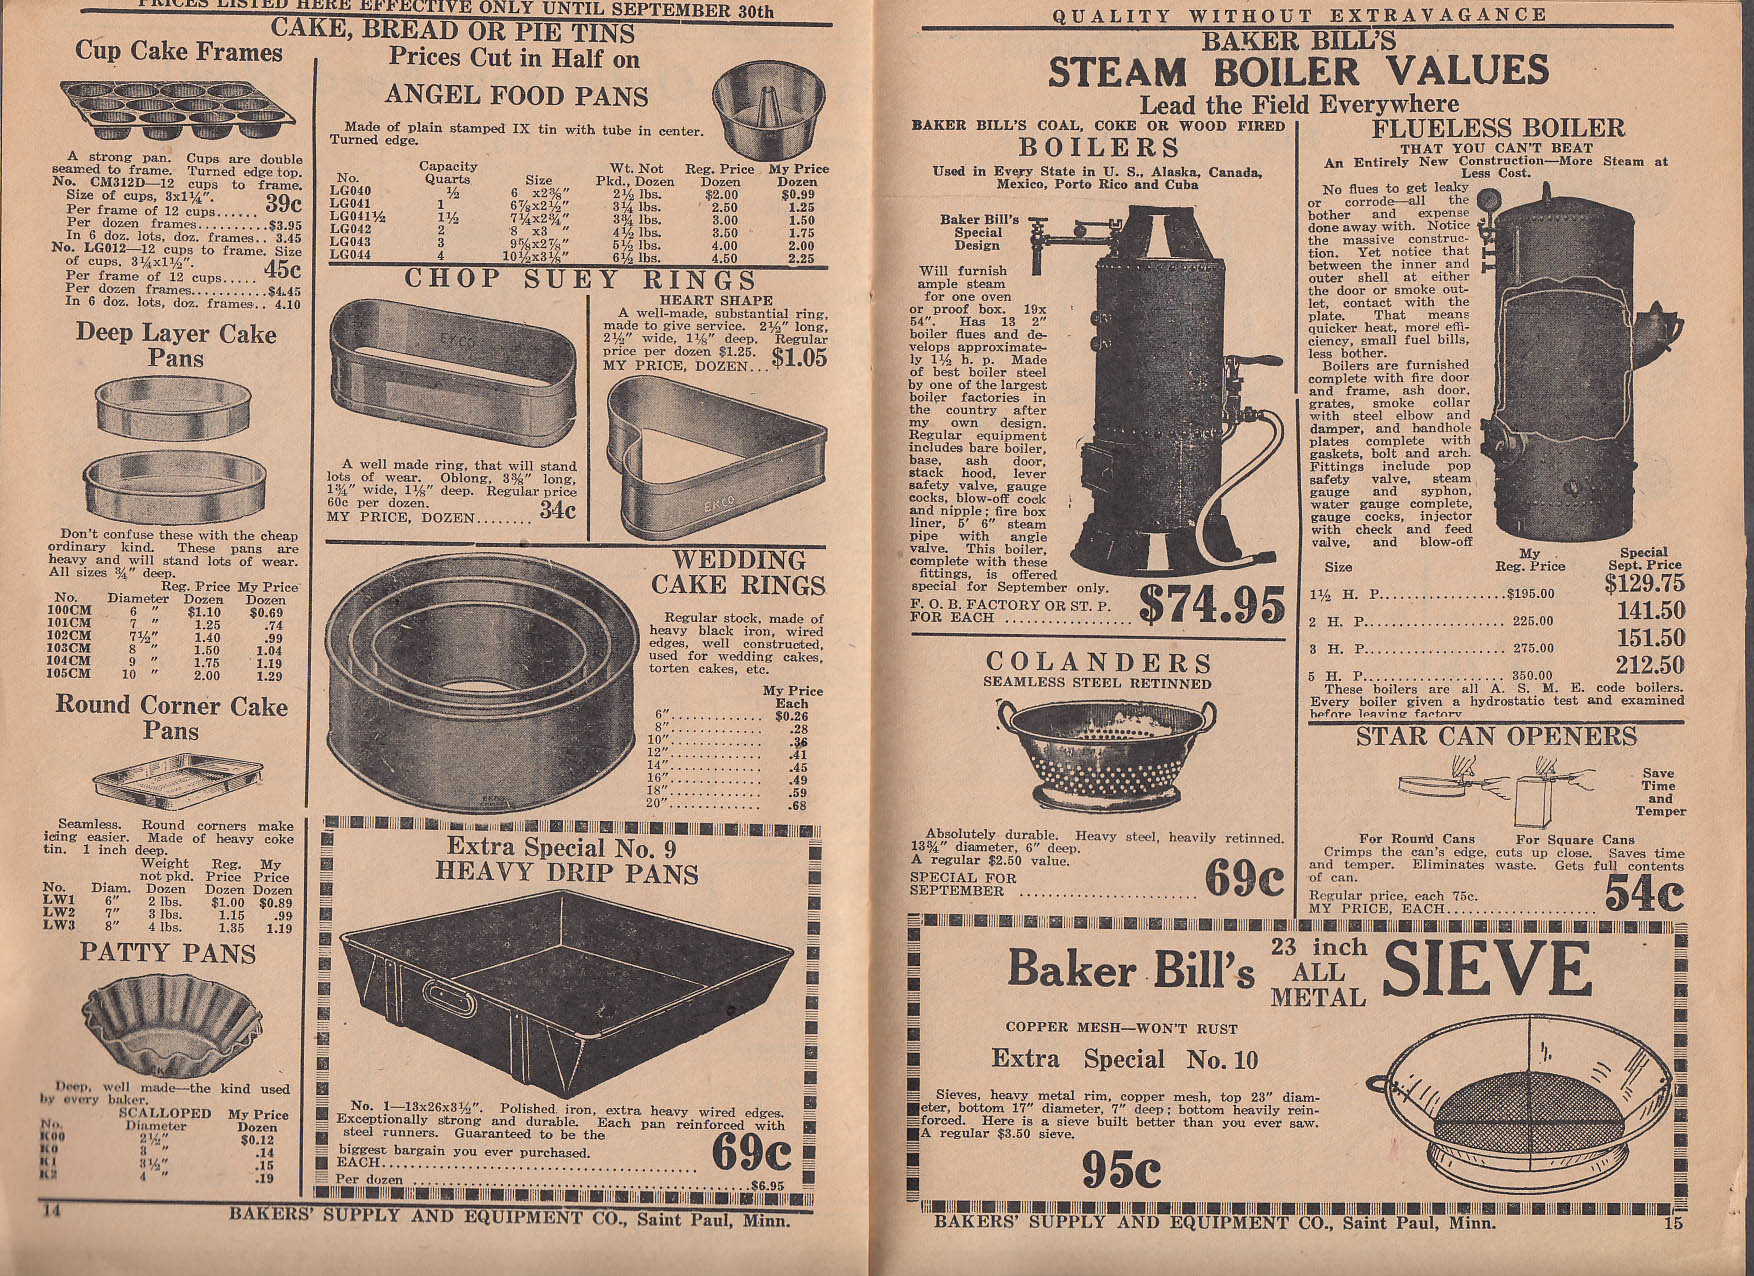 Bakers Supply Equipment Catalog 1928 racks pans uniforms tins displays +